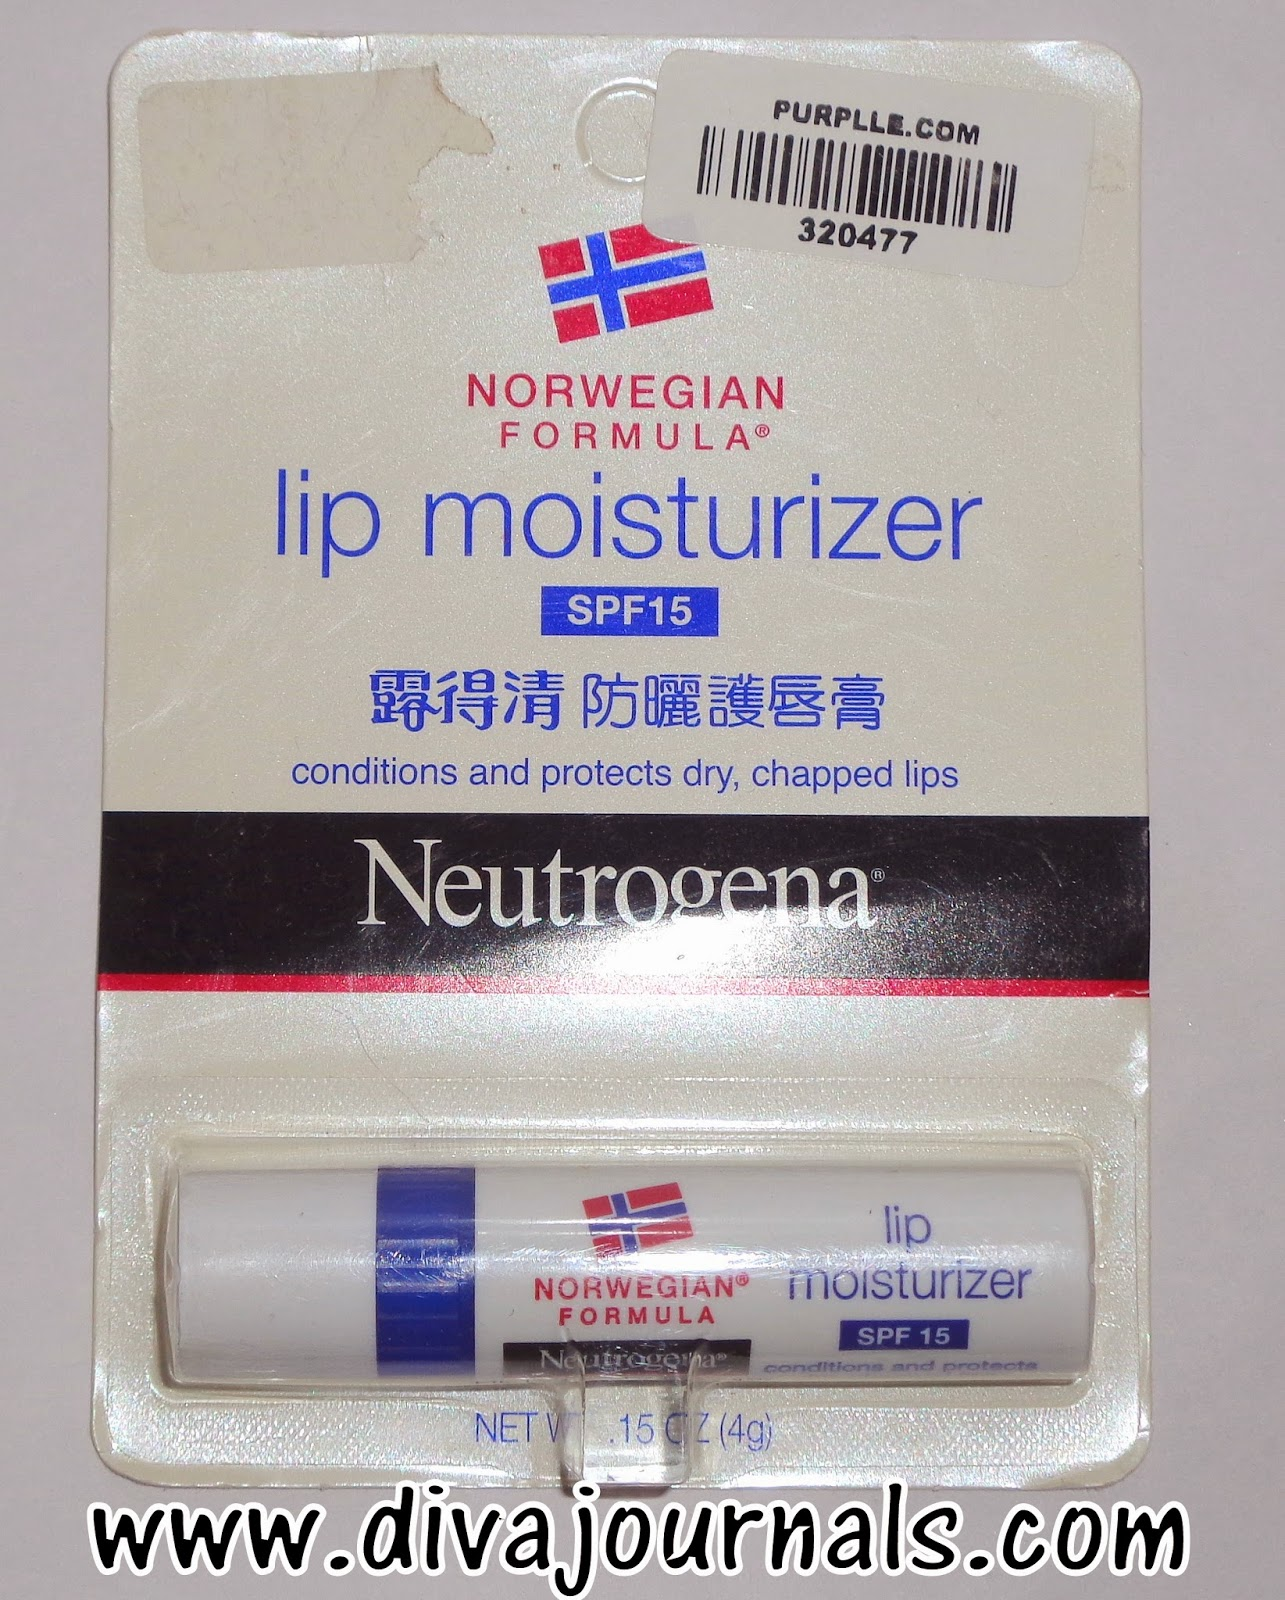 Neutrogena Lip Moisturiser (Norwegian Formula) Review